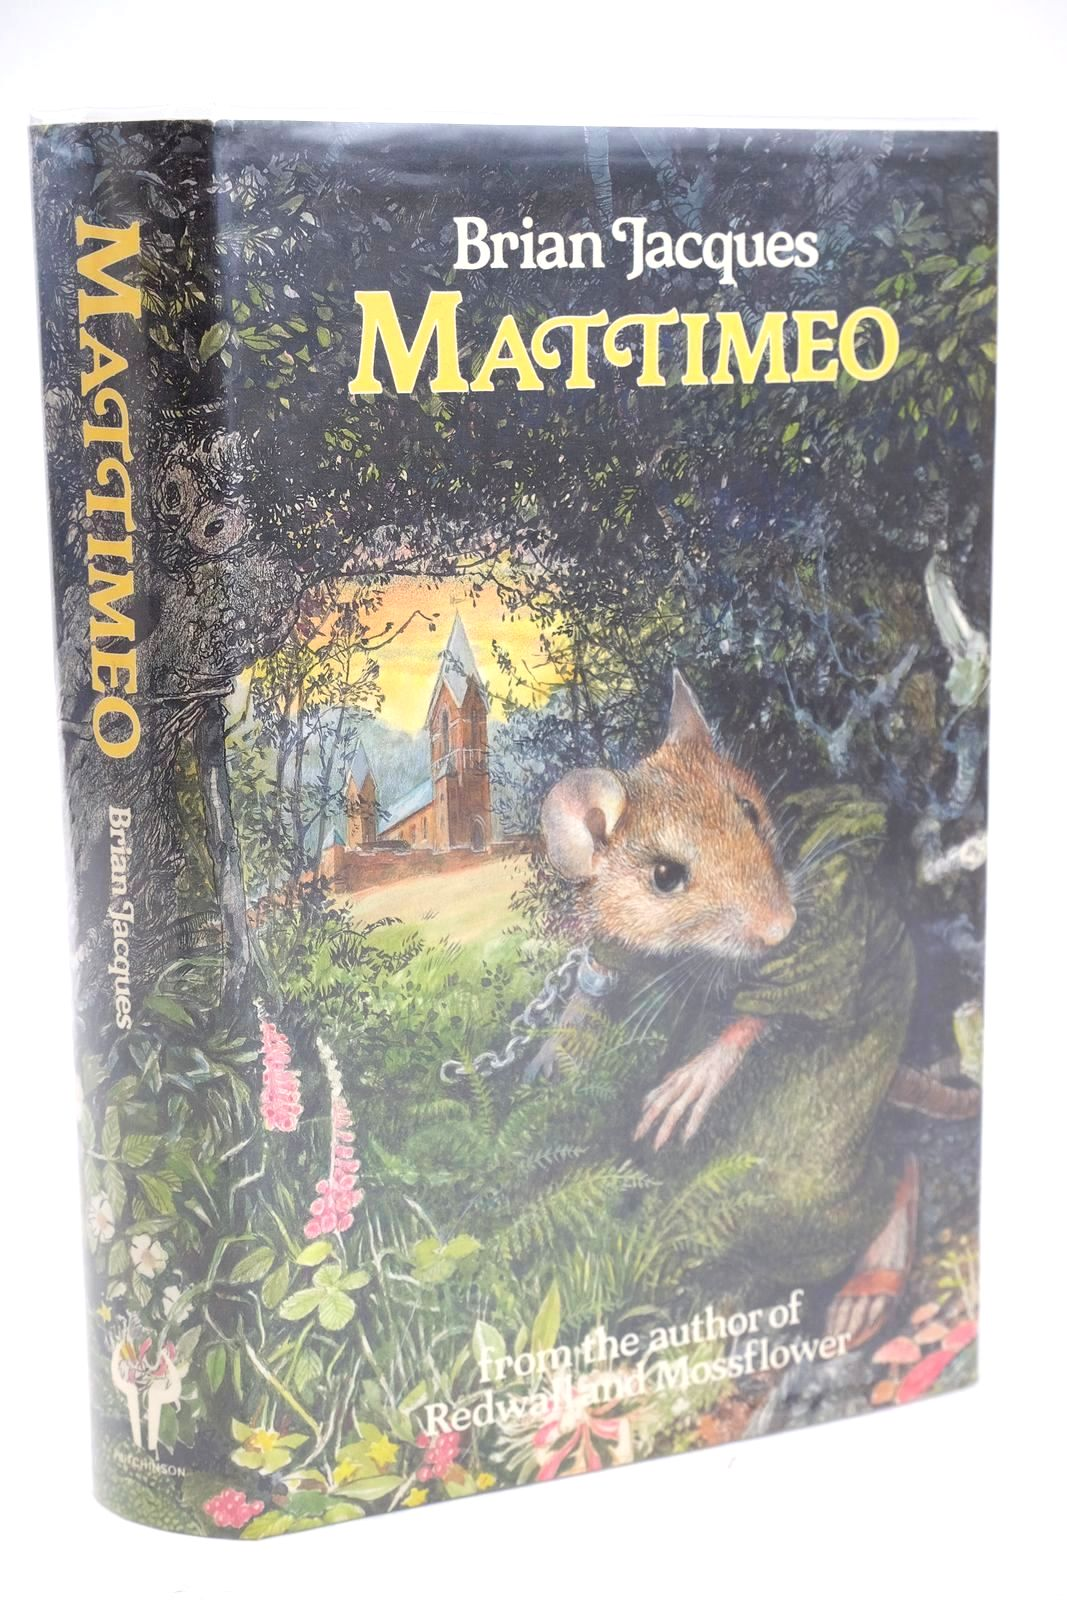 Photo of MATTIMEO written by Jacques, Brian illustrated by Chalk, Gary published by Hutchinson (STOCK CODE: 1319437)  for sale by Stella & Rose's Books